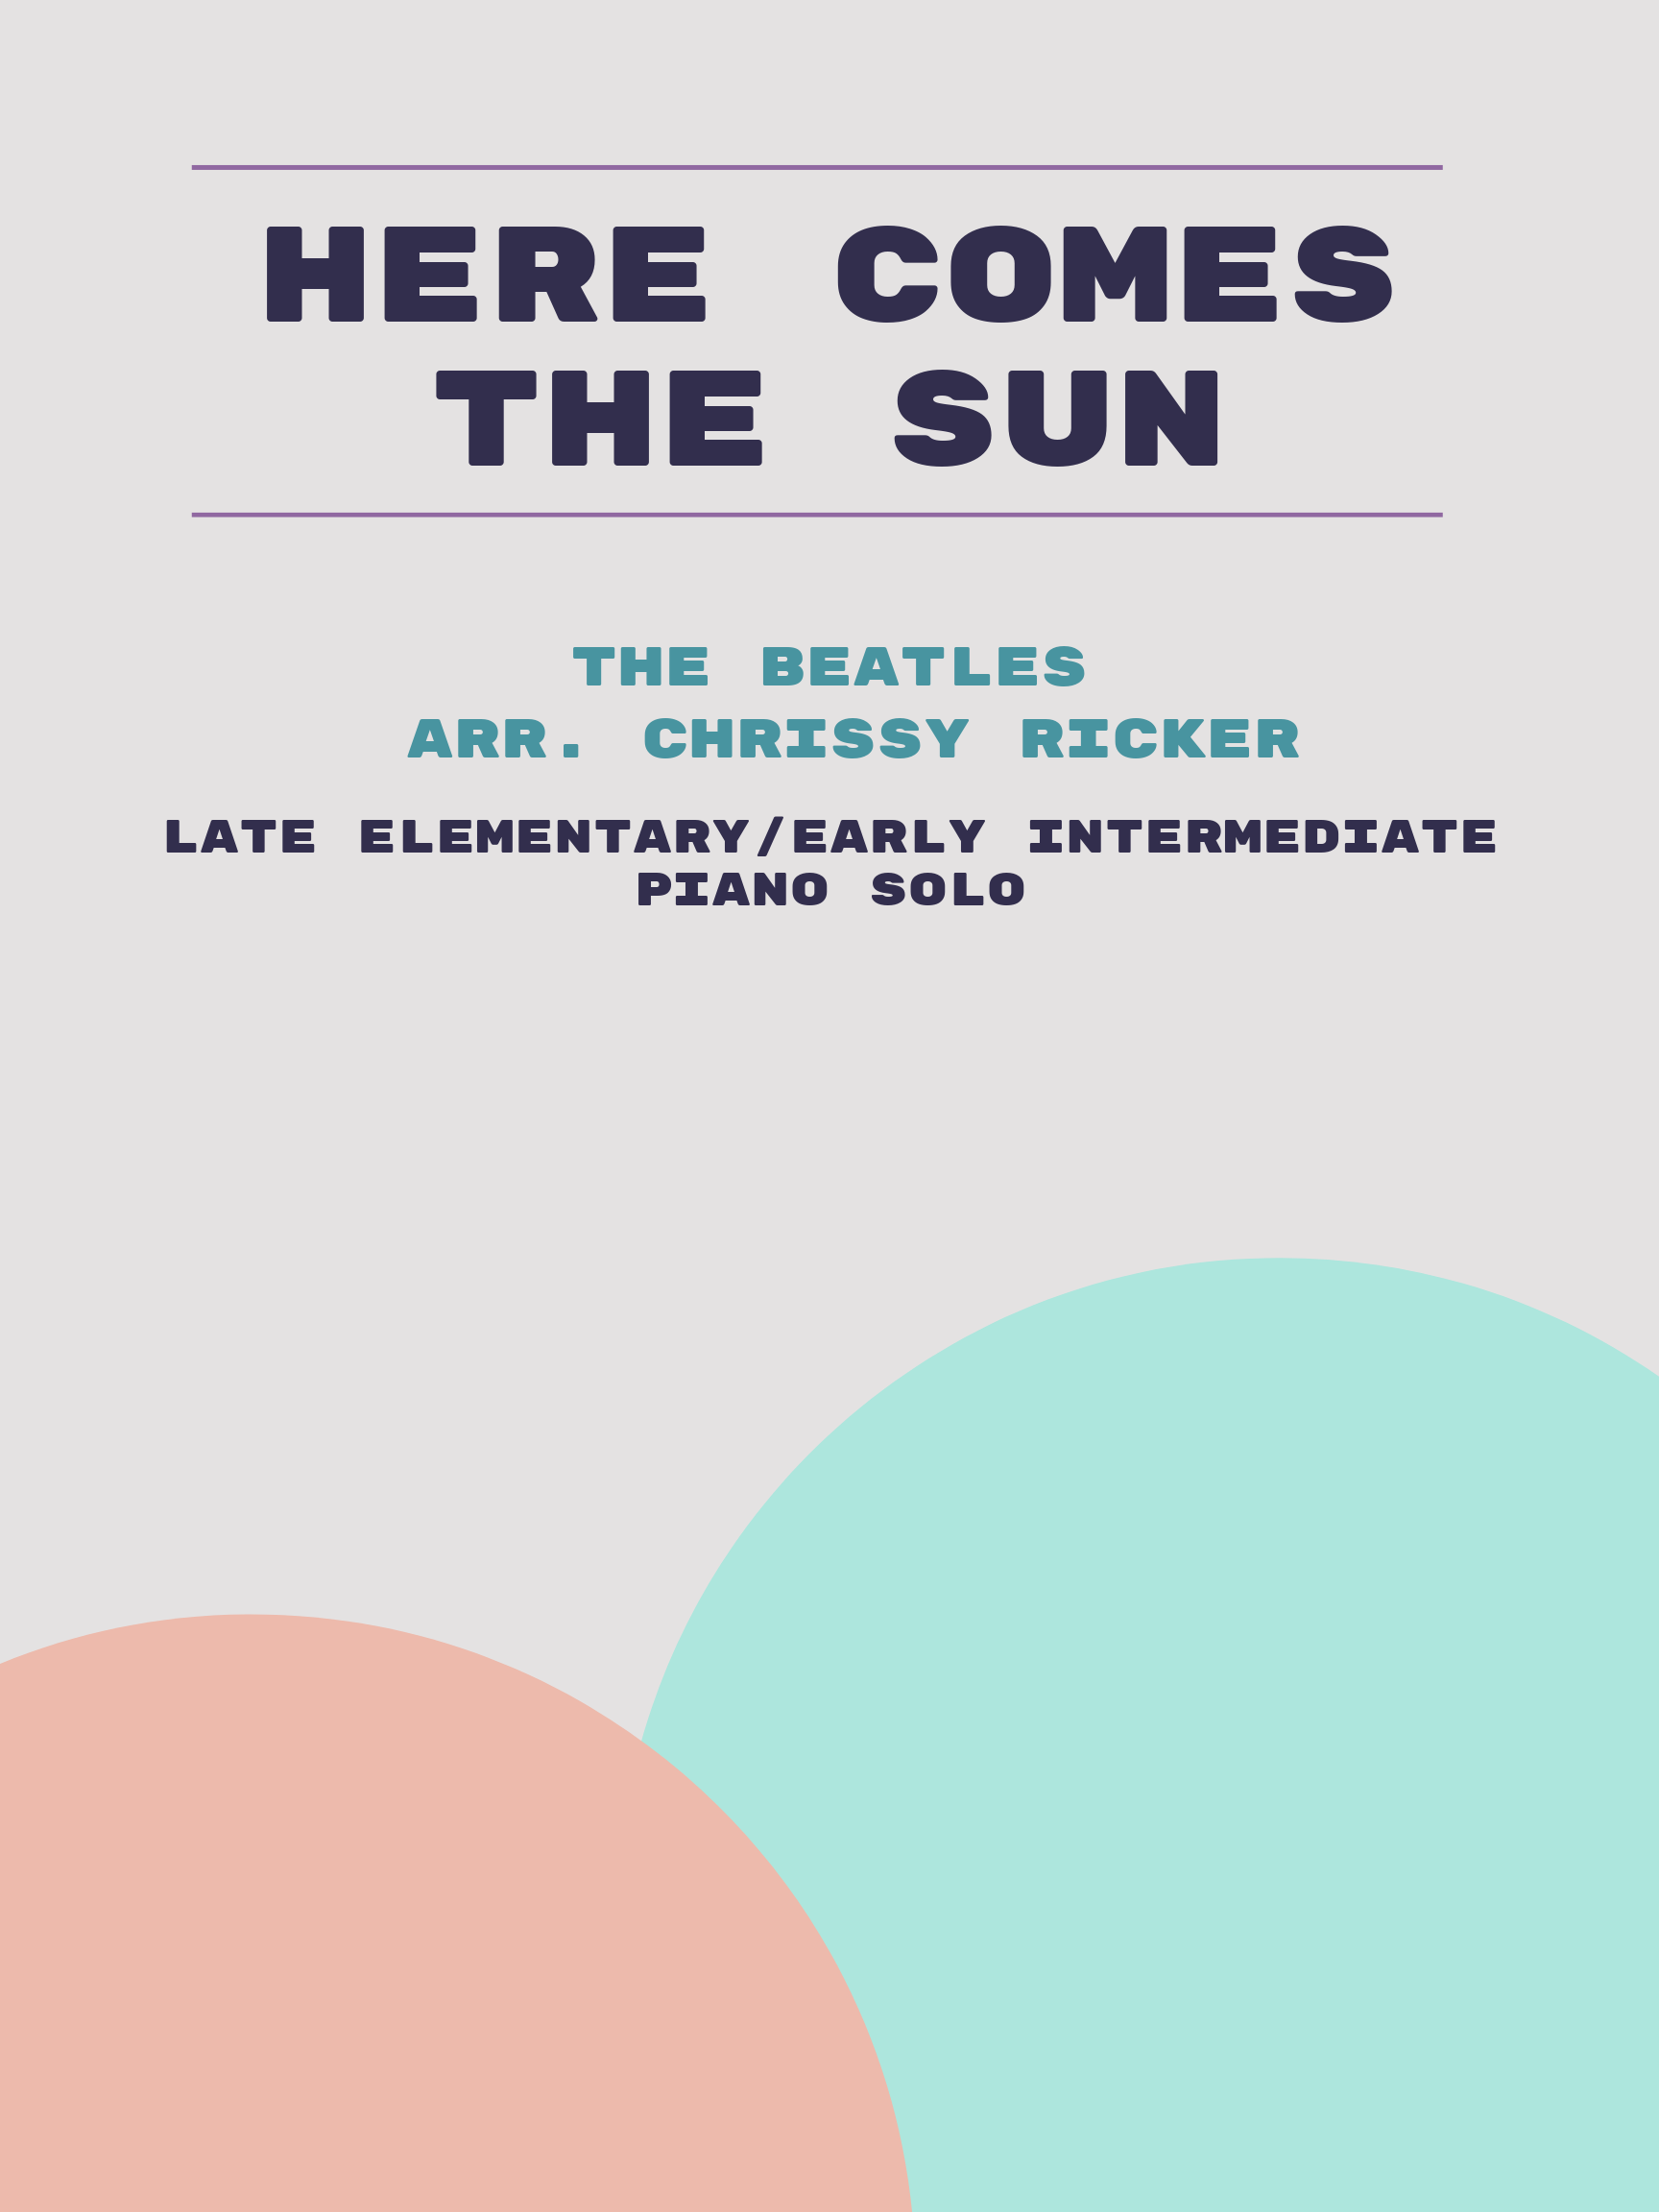 Here Comes the Sun by The Beatles